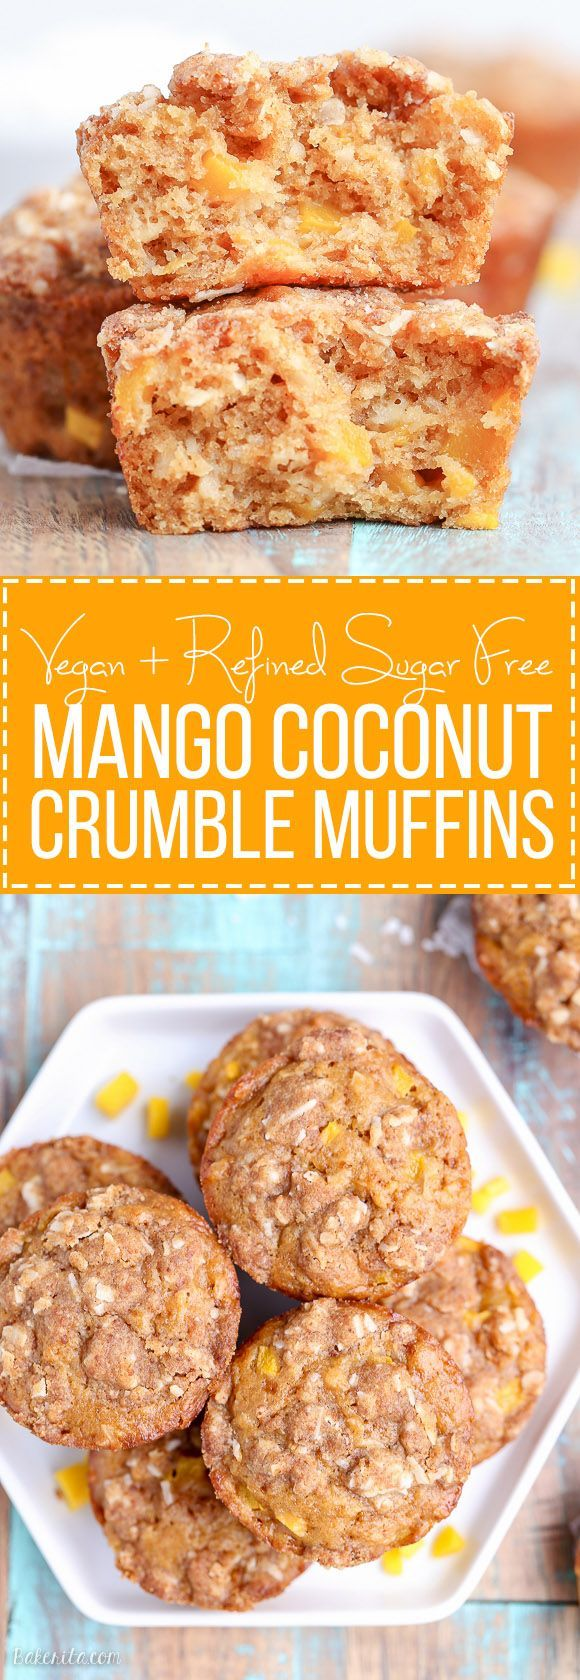 These Mango Coconut Crumble Muffins are tender and full of tropical flavor! These vegan muffins use coconut oil, coconut flakes, and fresh diced mango for a treat that will make you feel like you're on vacation.